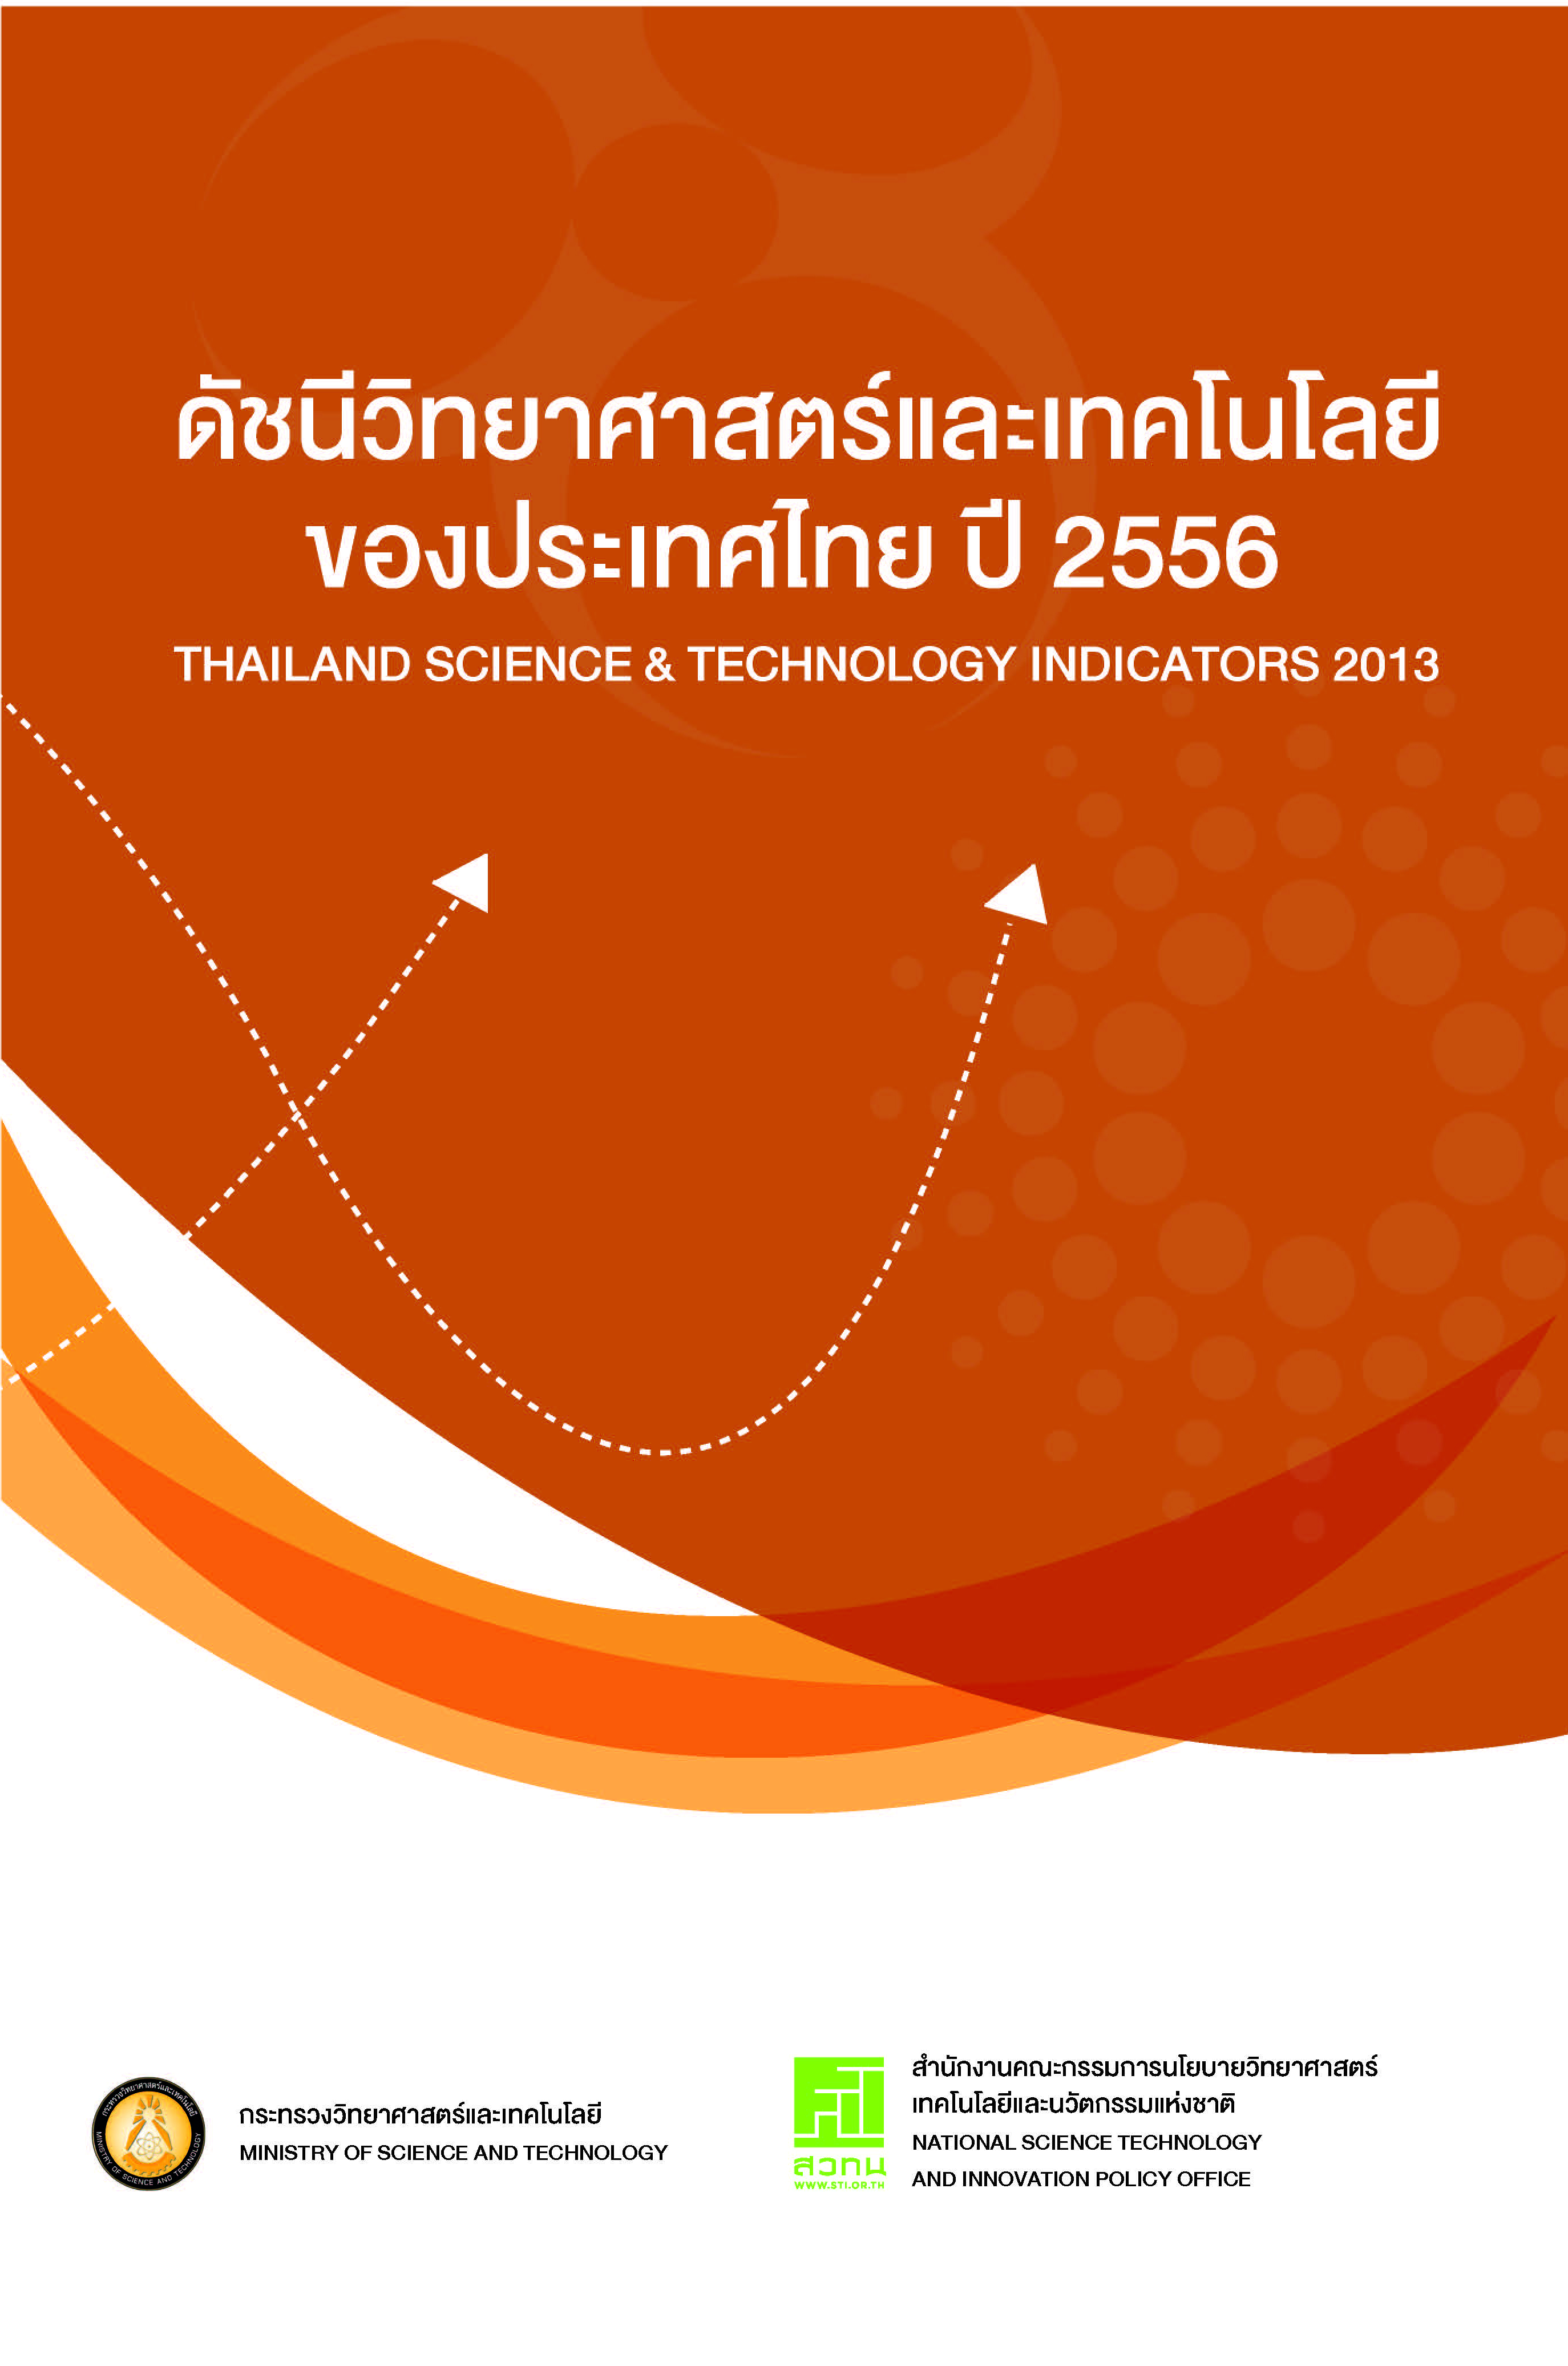 Index of Science and TechnologyThailand 2013 ( 2556)